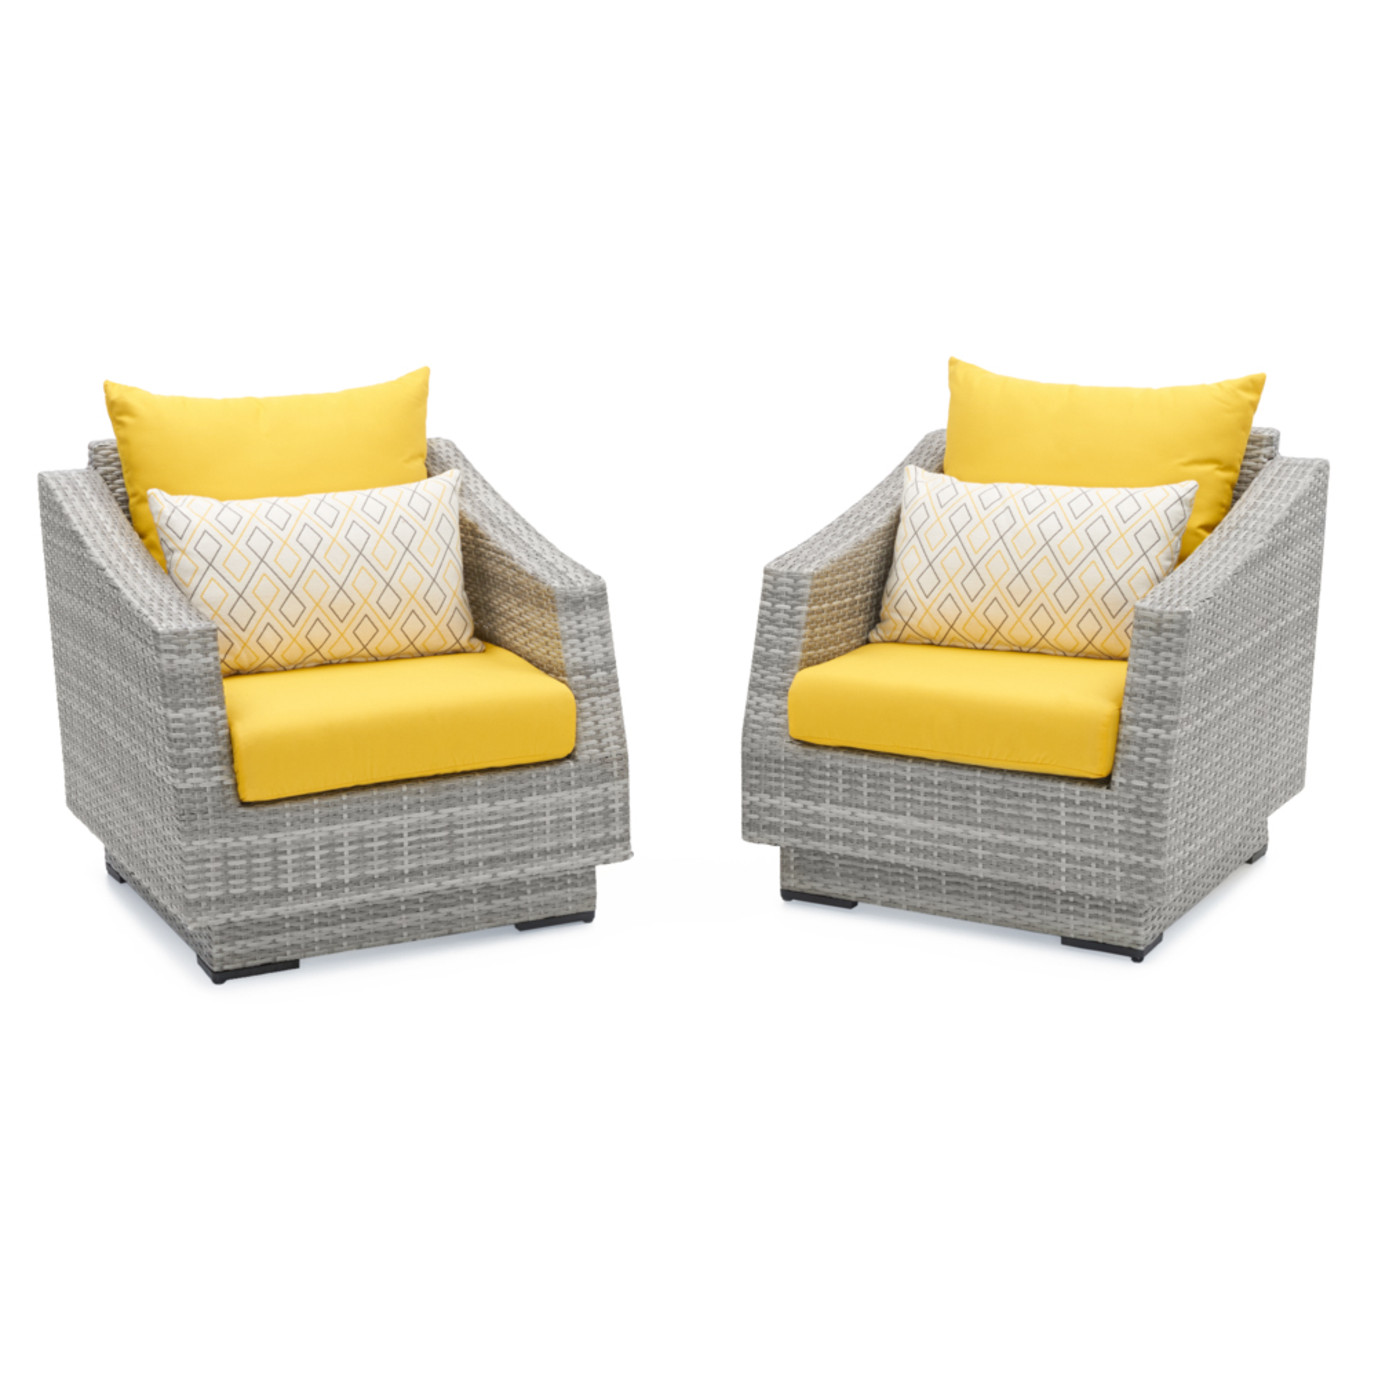 Cannes™ Club Chairs - Sunflower Yellow